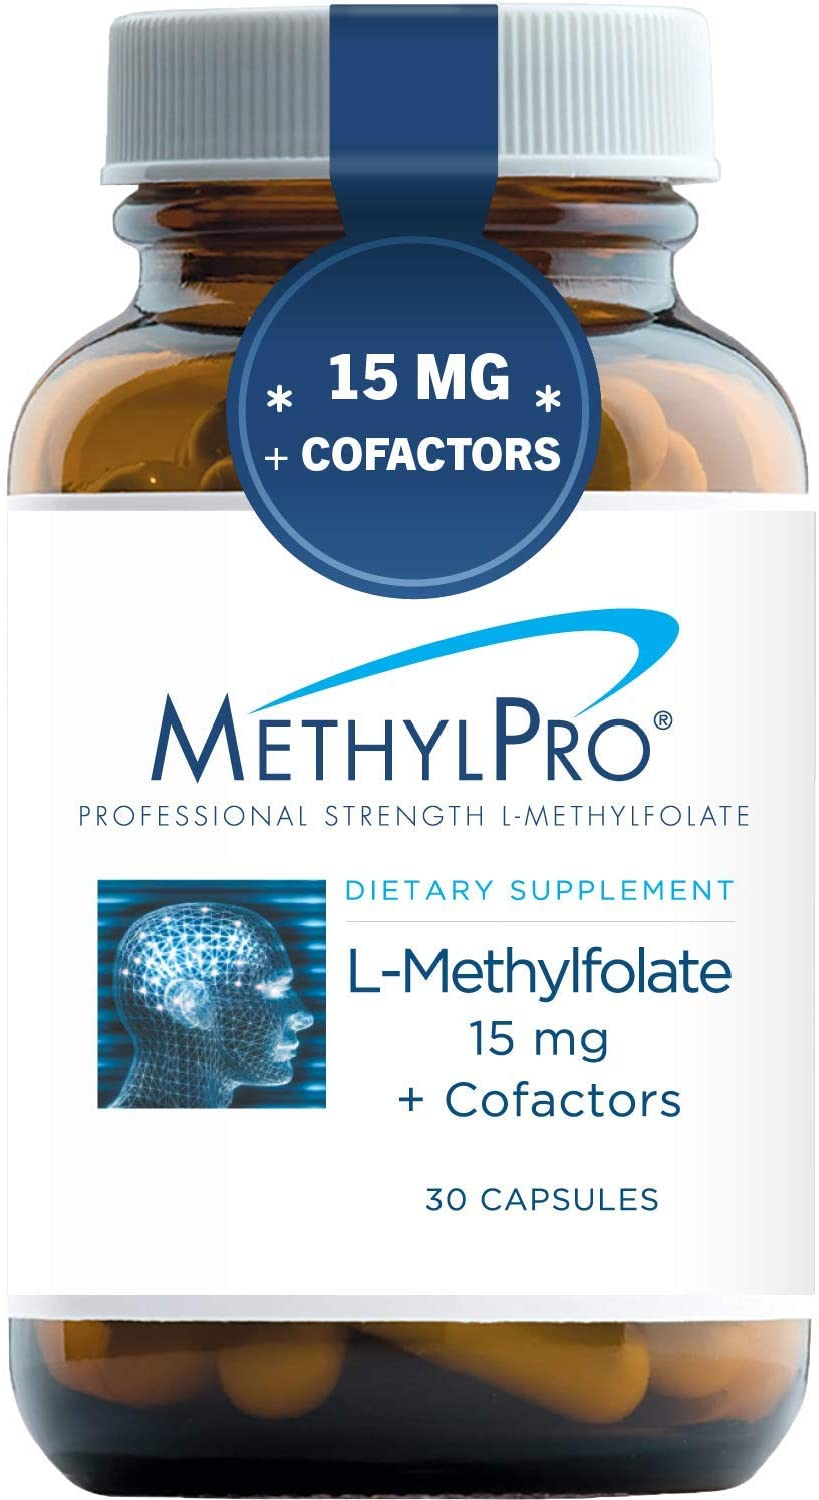 MethylPro 15mg L-Methylfolate Sale SALE% OFF + Cofactors - Capsules 30 Cheap mail order specialty store Profes